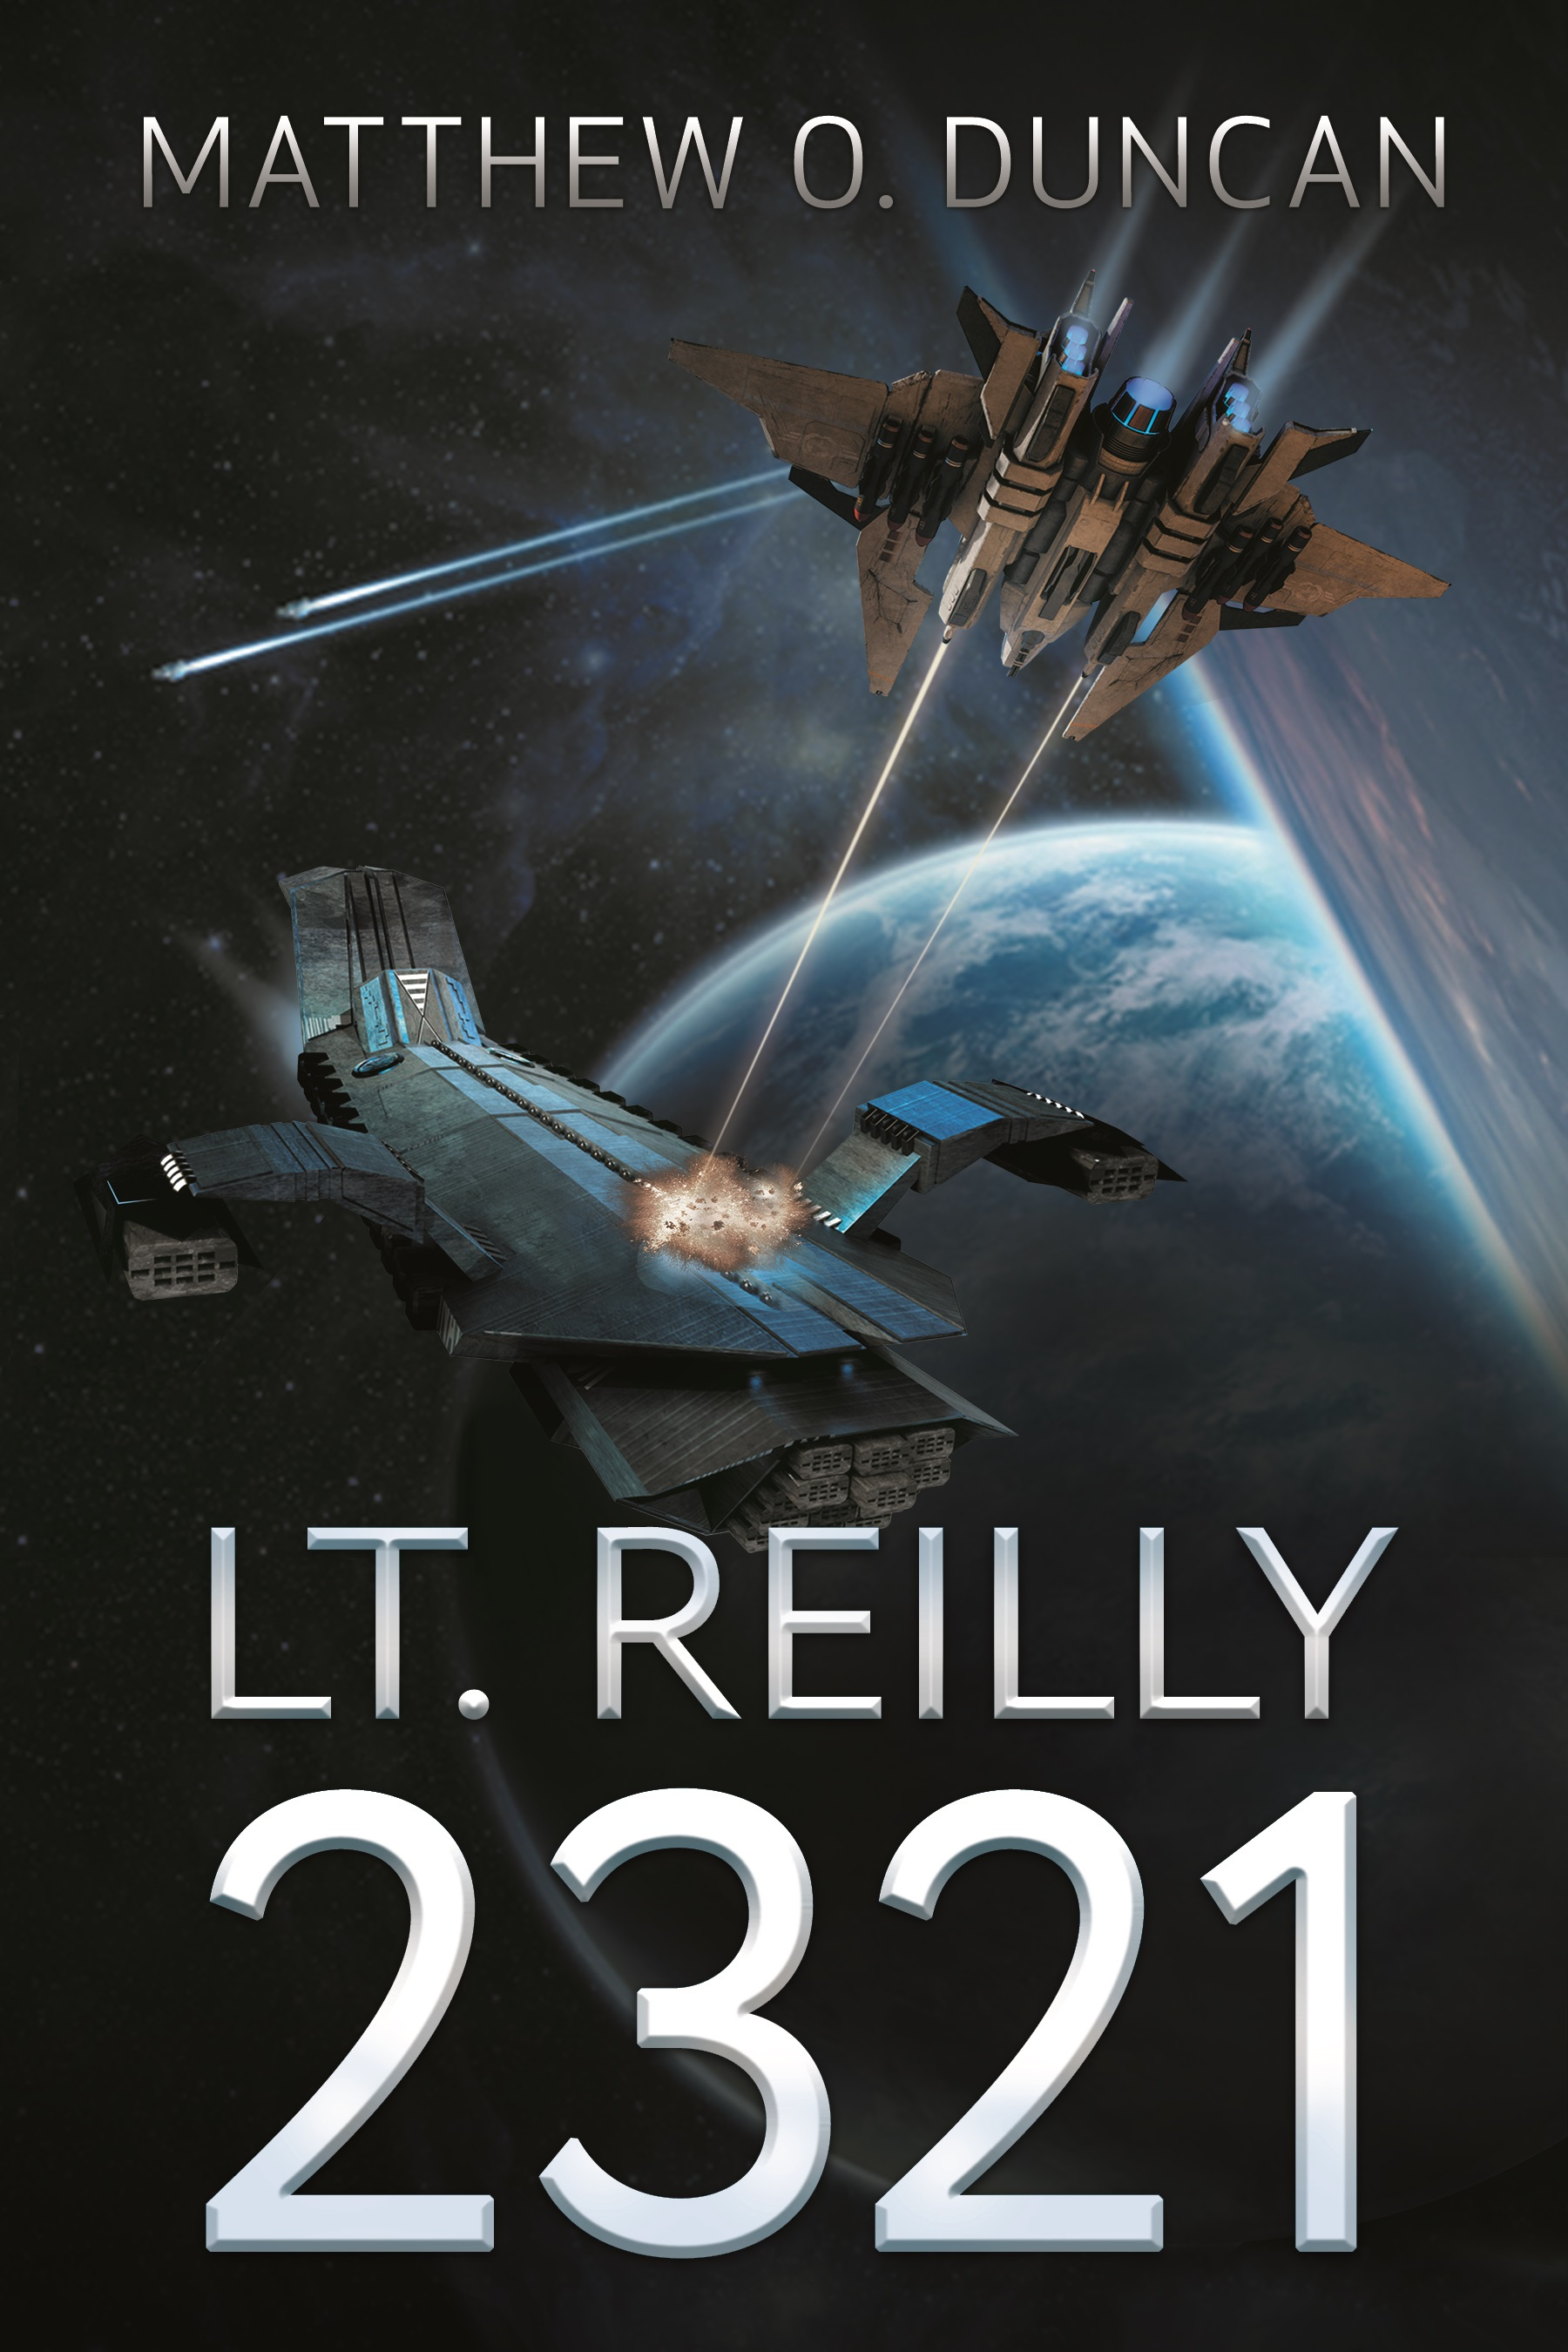 Cover of Lt. Reilly 2321